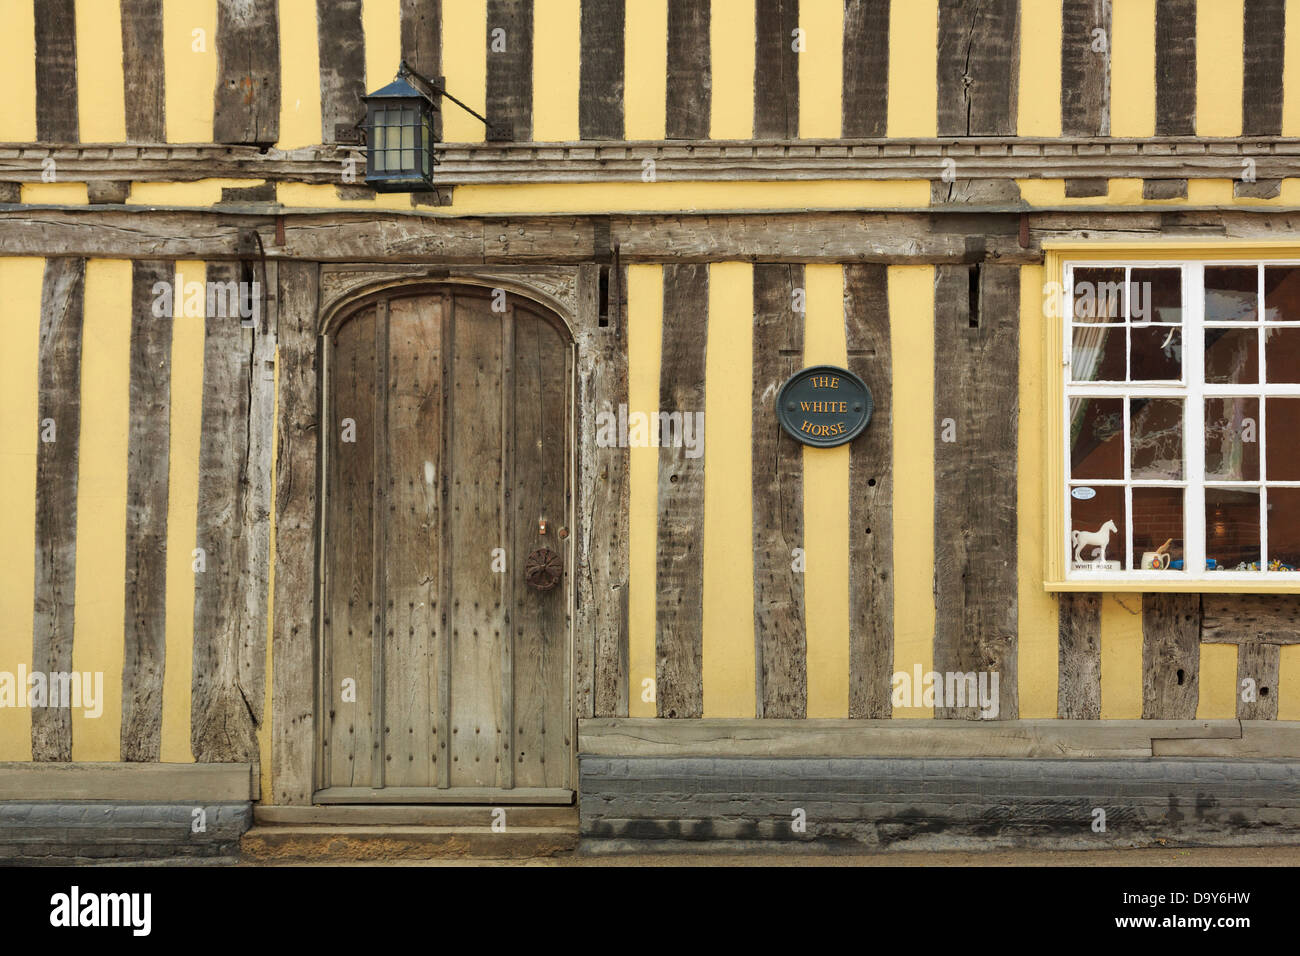 Old wooden door in 15th century yellow timbered building formerly The White Horse inn in Lavenham, Suffolk, England, - Stock Image